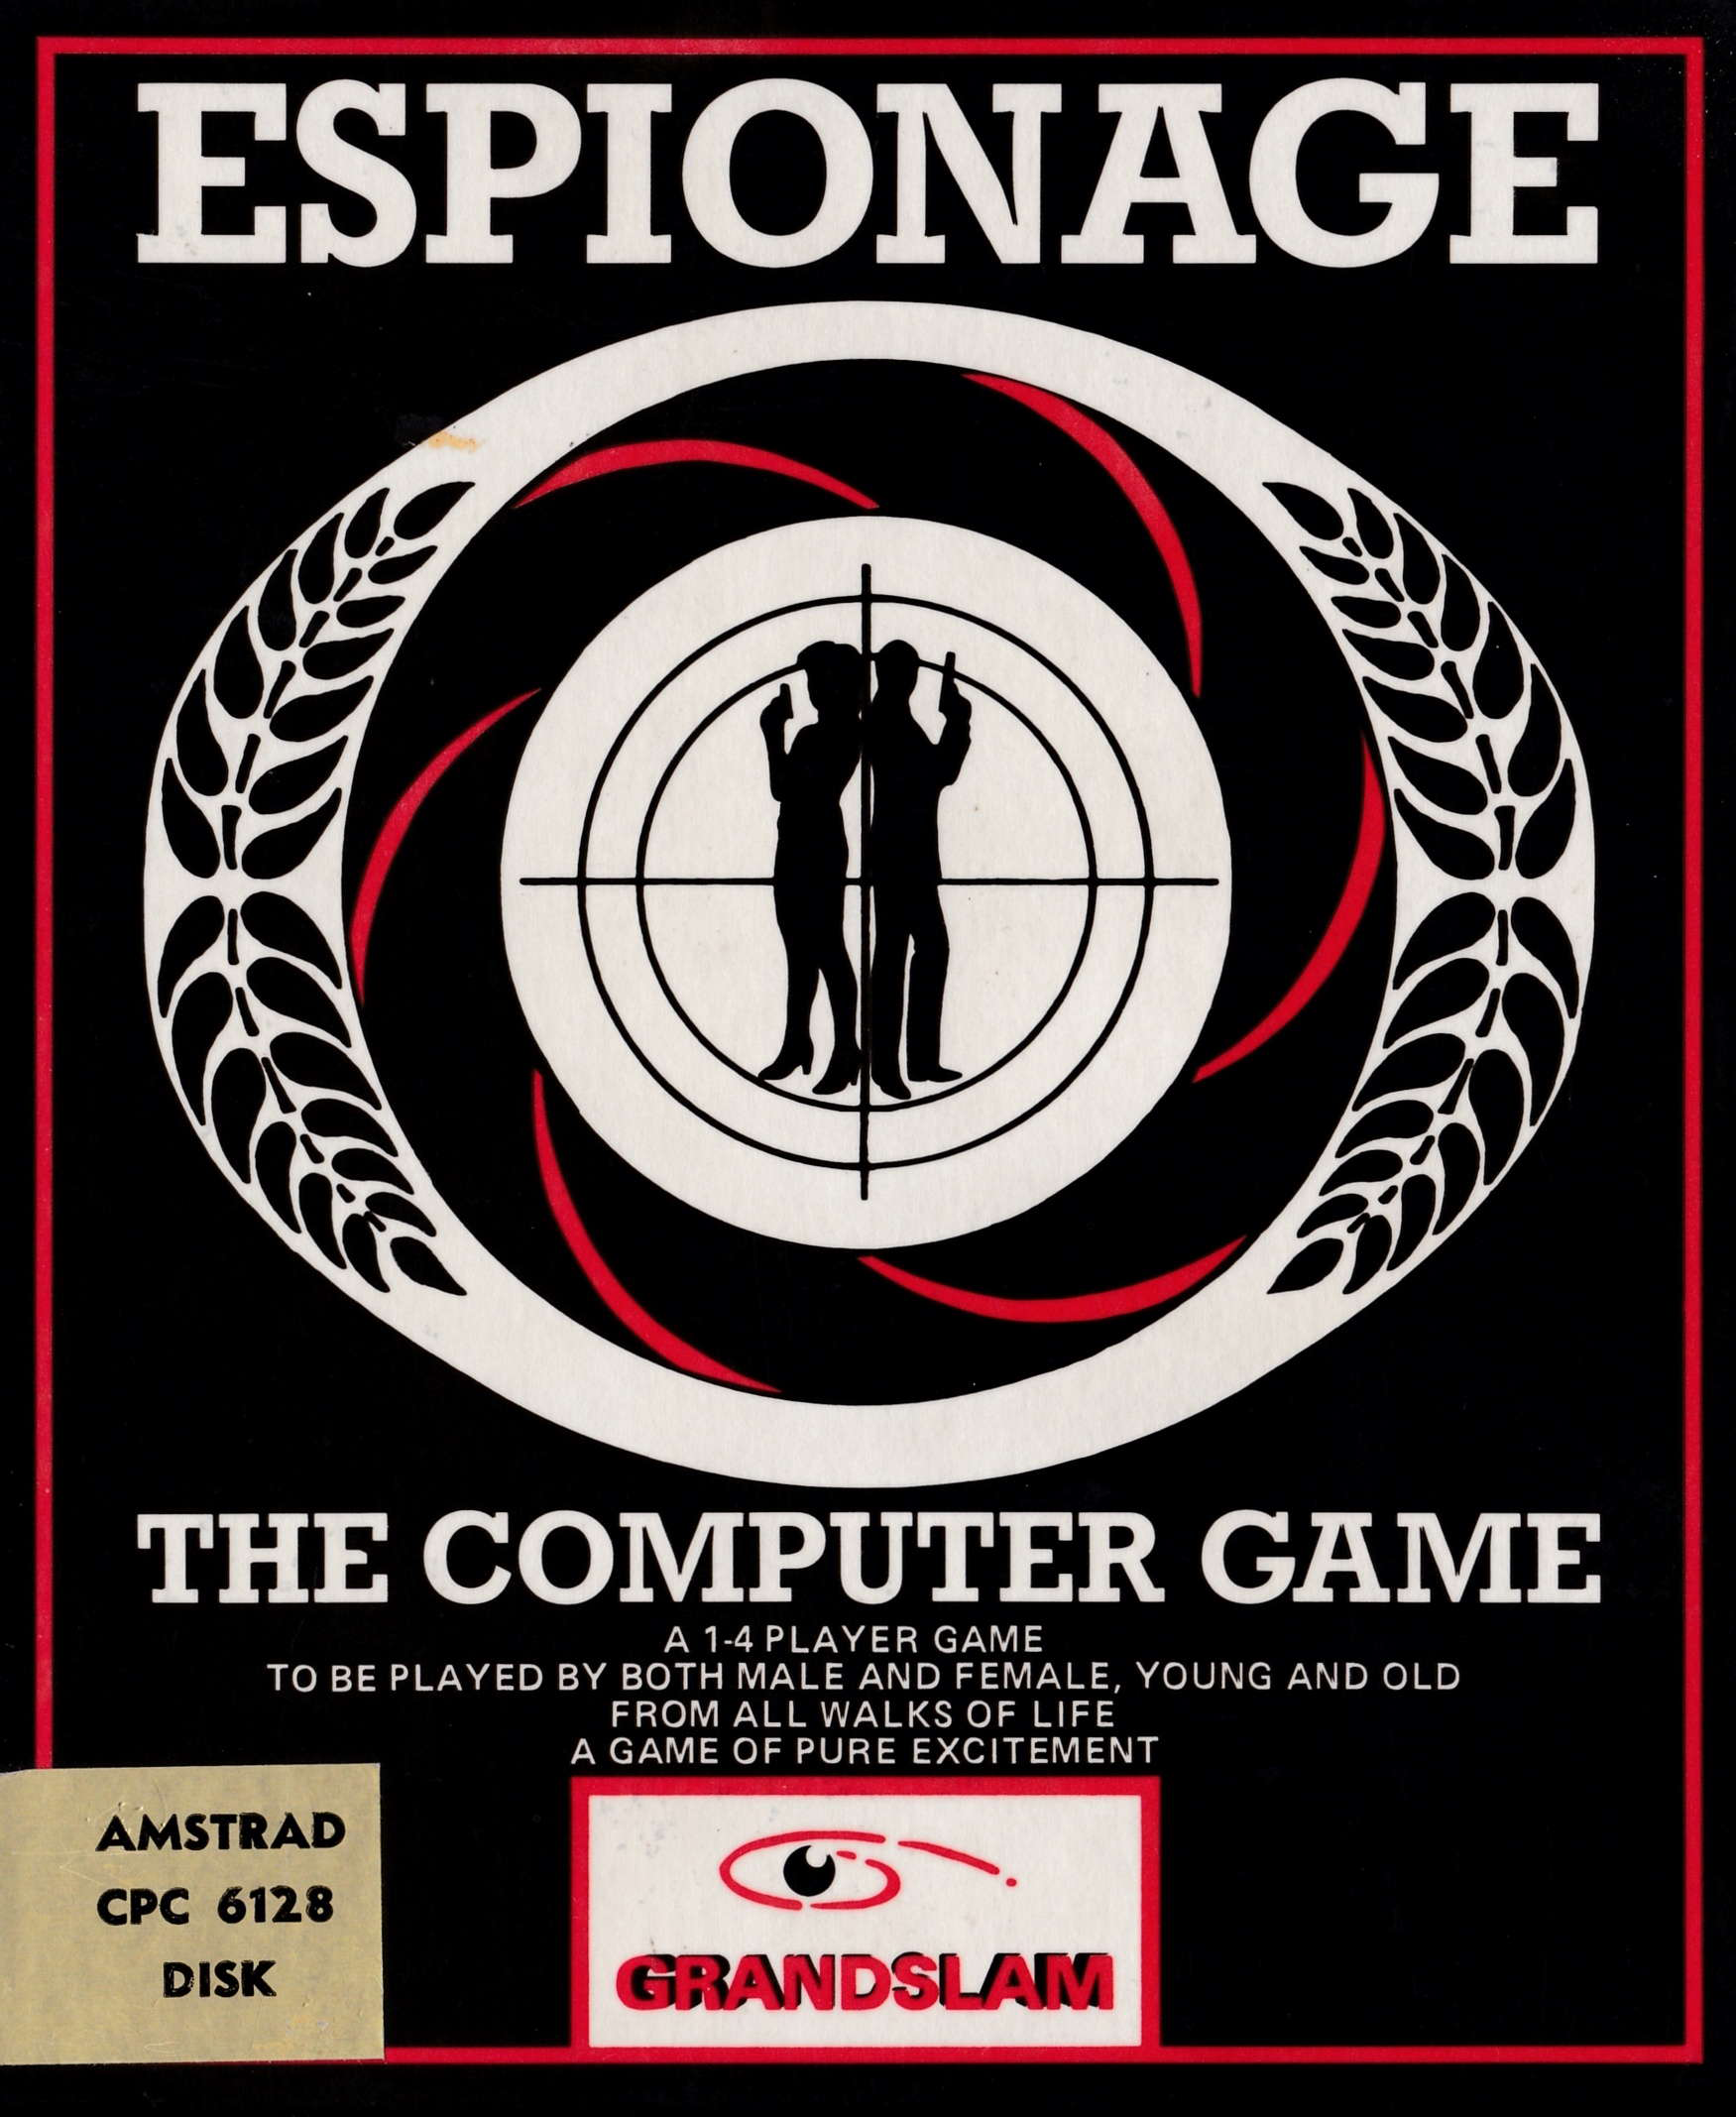 cover of the Amstrad CPC game Espionage  by GameBase CPC